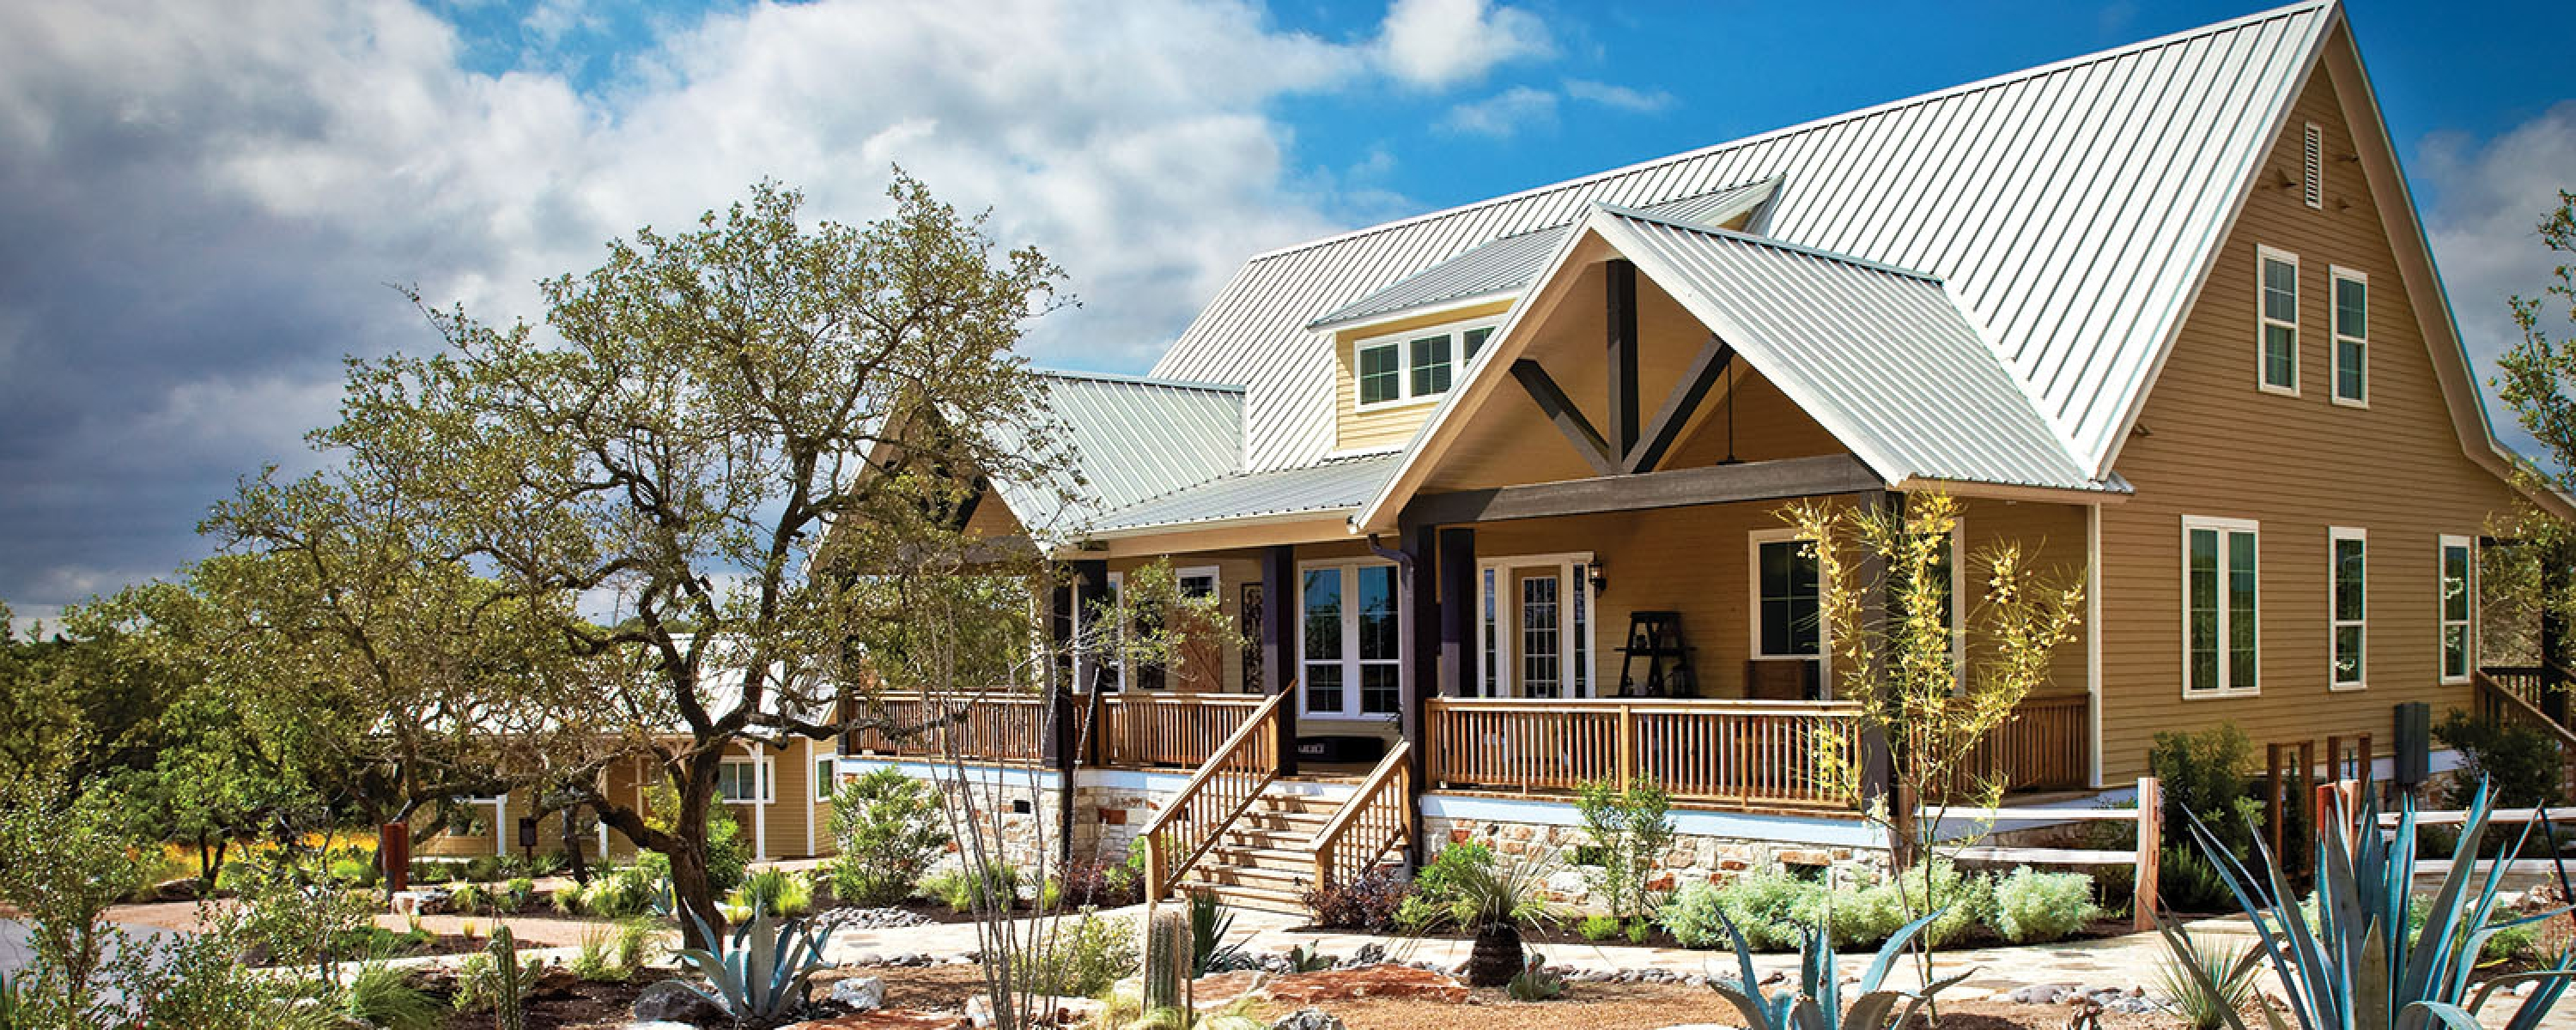 model hill img home community texas wimberleyweb wimberley casual country cottages park